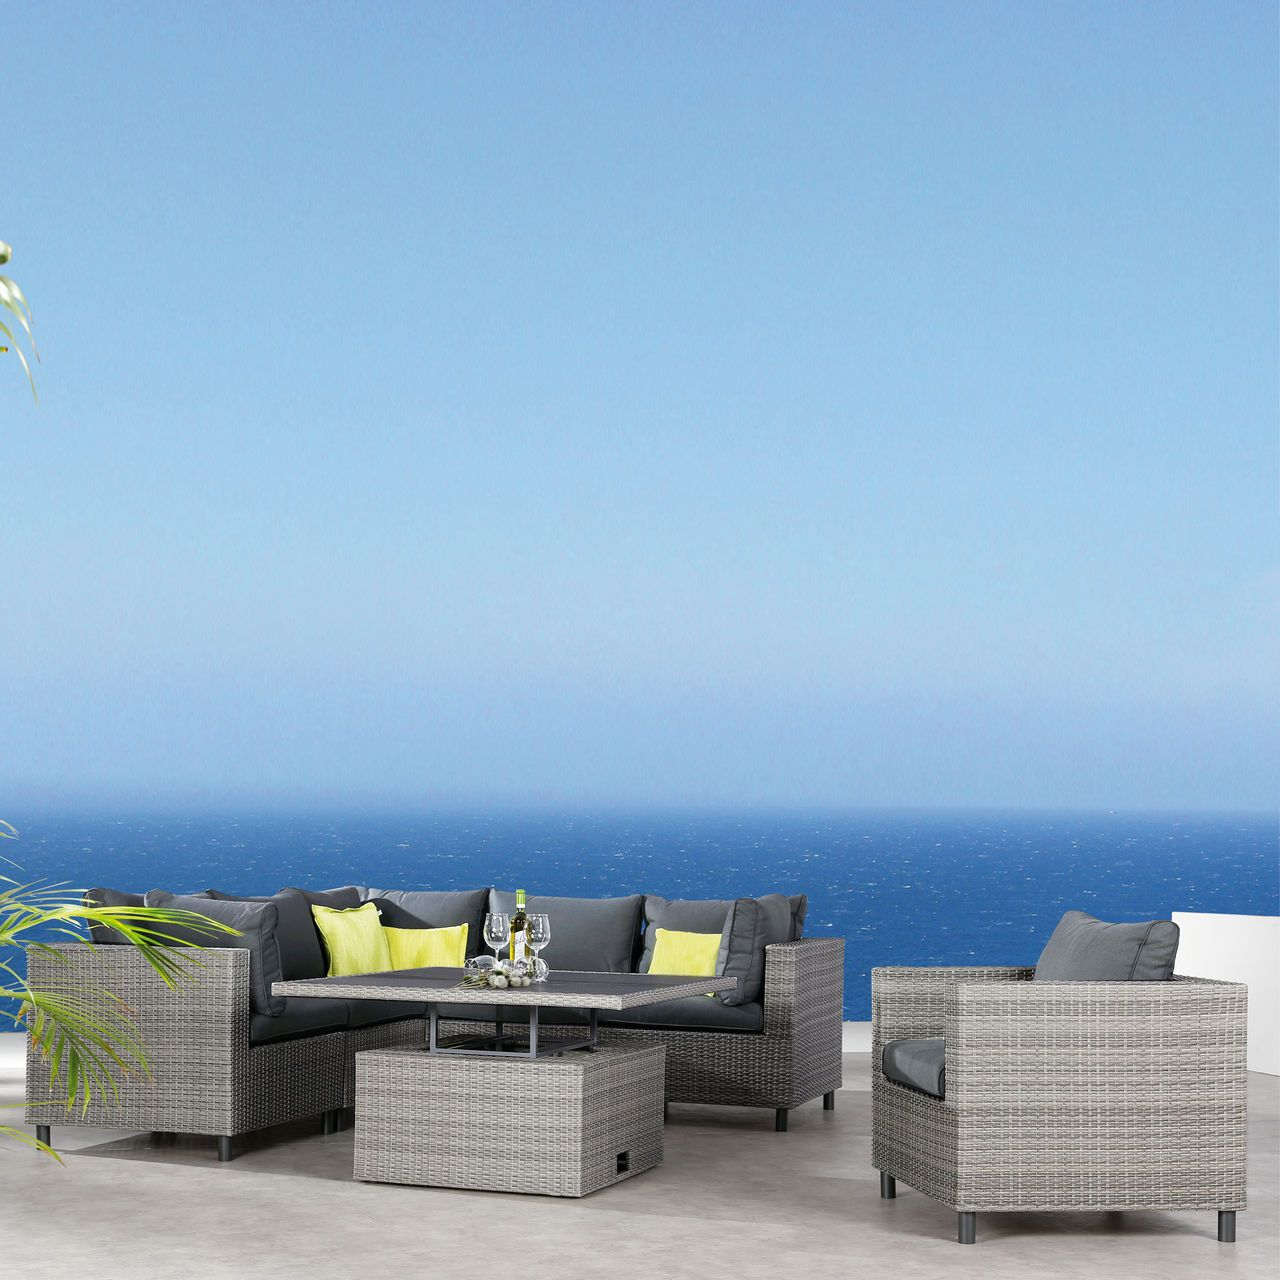 Outdoor Möbel Lounge Lounge Serie Bonaire Garten Lounge Outdoor Decor Und